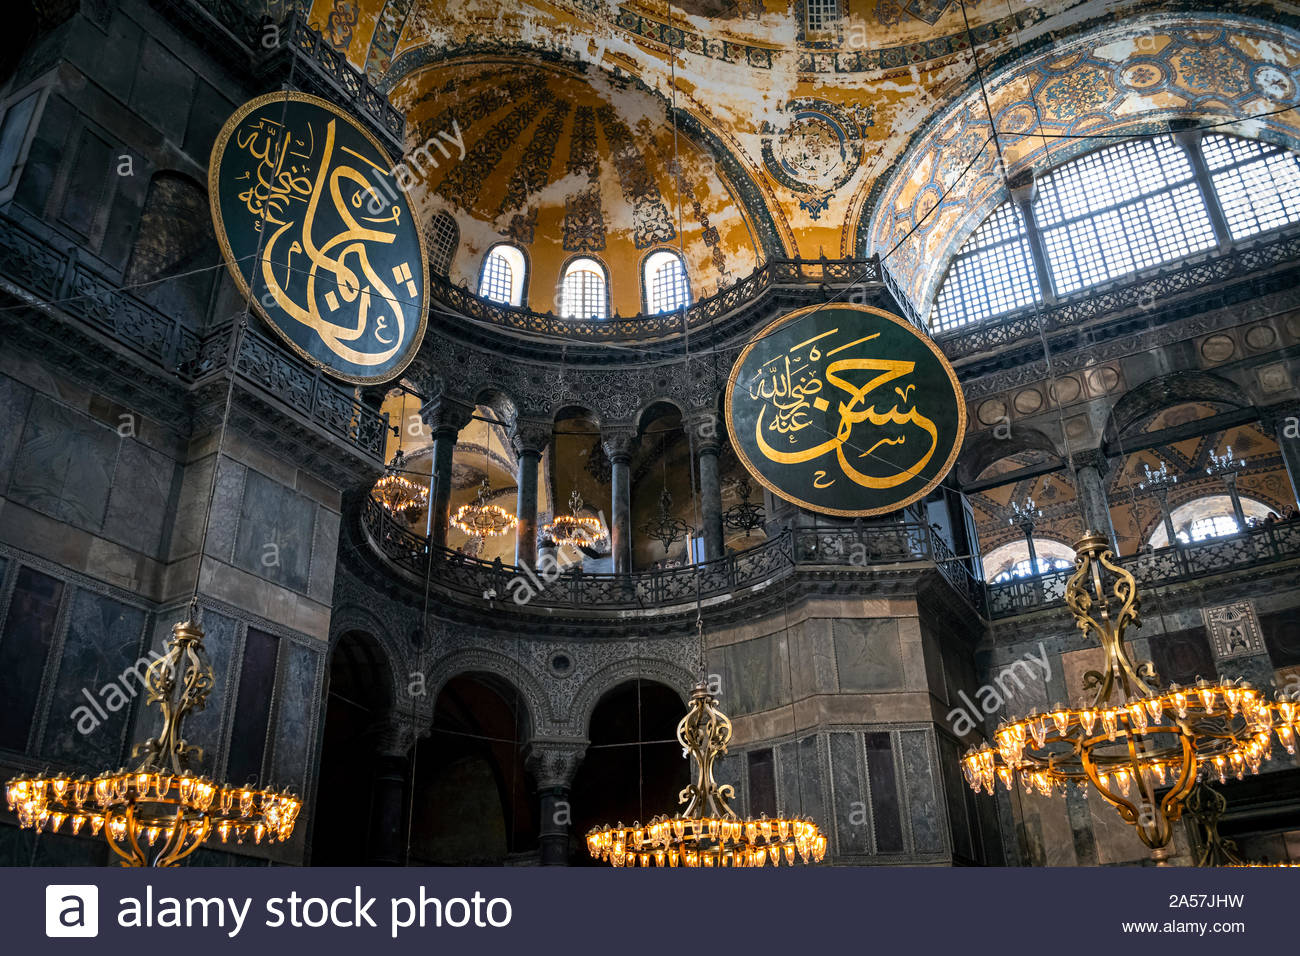 View of the ceiling and upper level of the interior of the Hagia Sophia museum, a former Muslim Mosque, in Istanbul, Turkey. Stock Photo